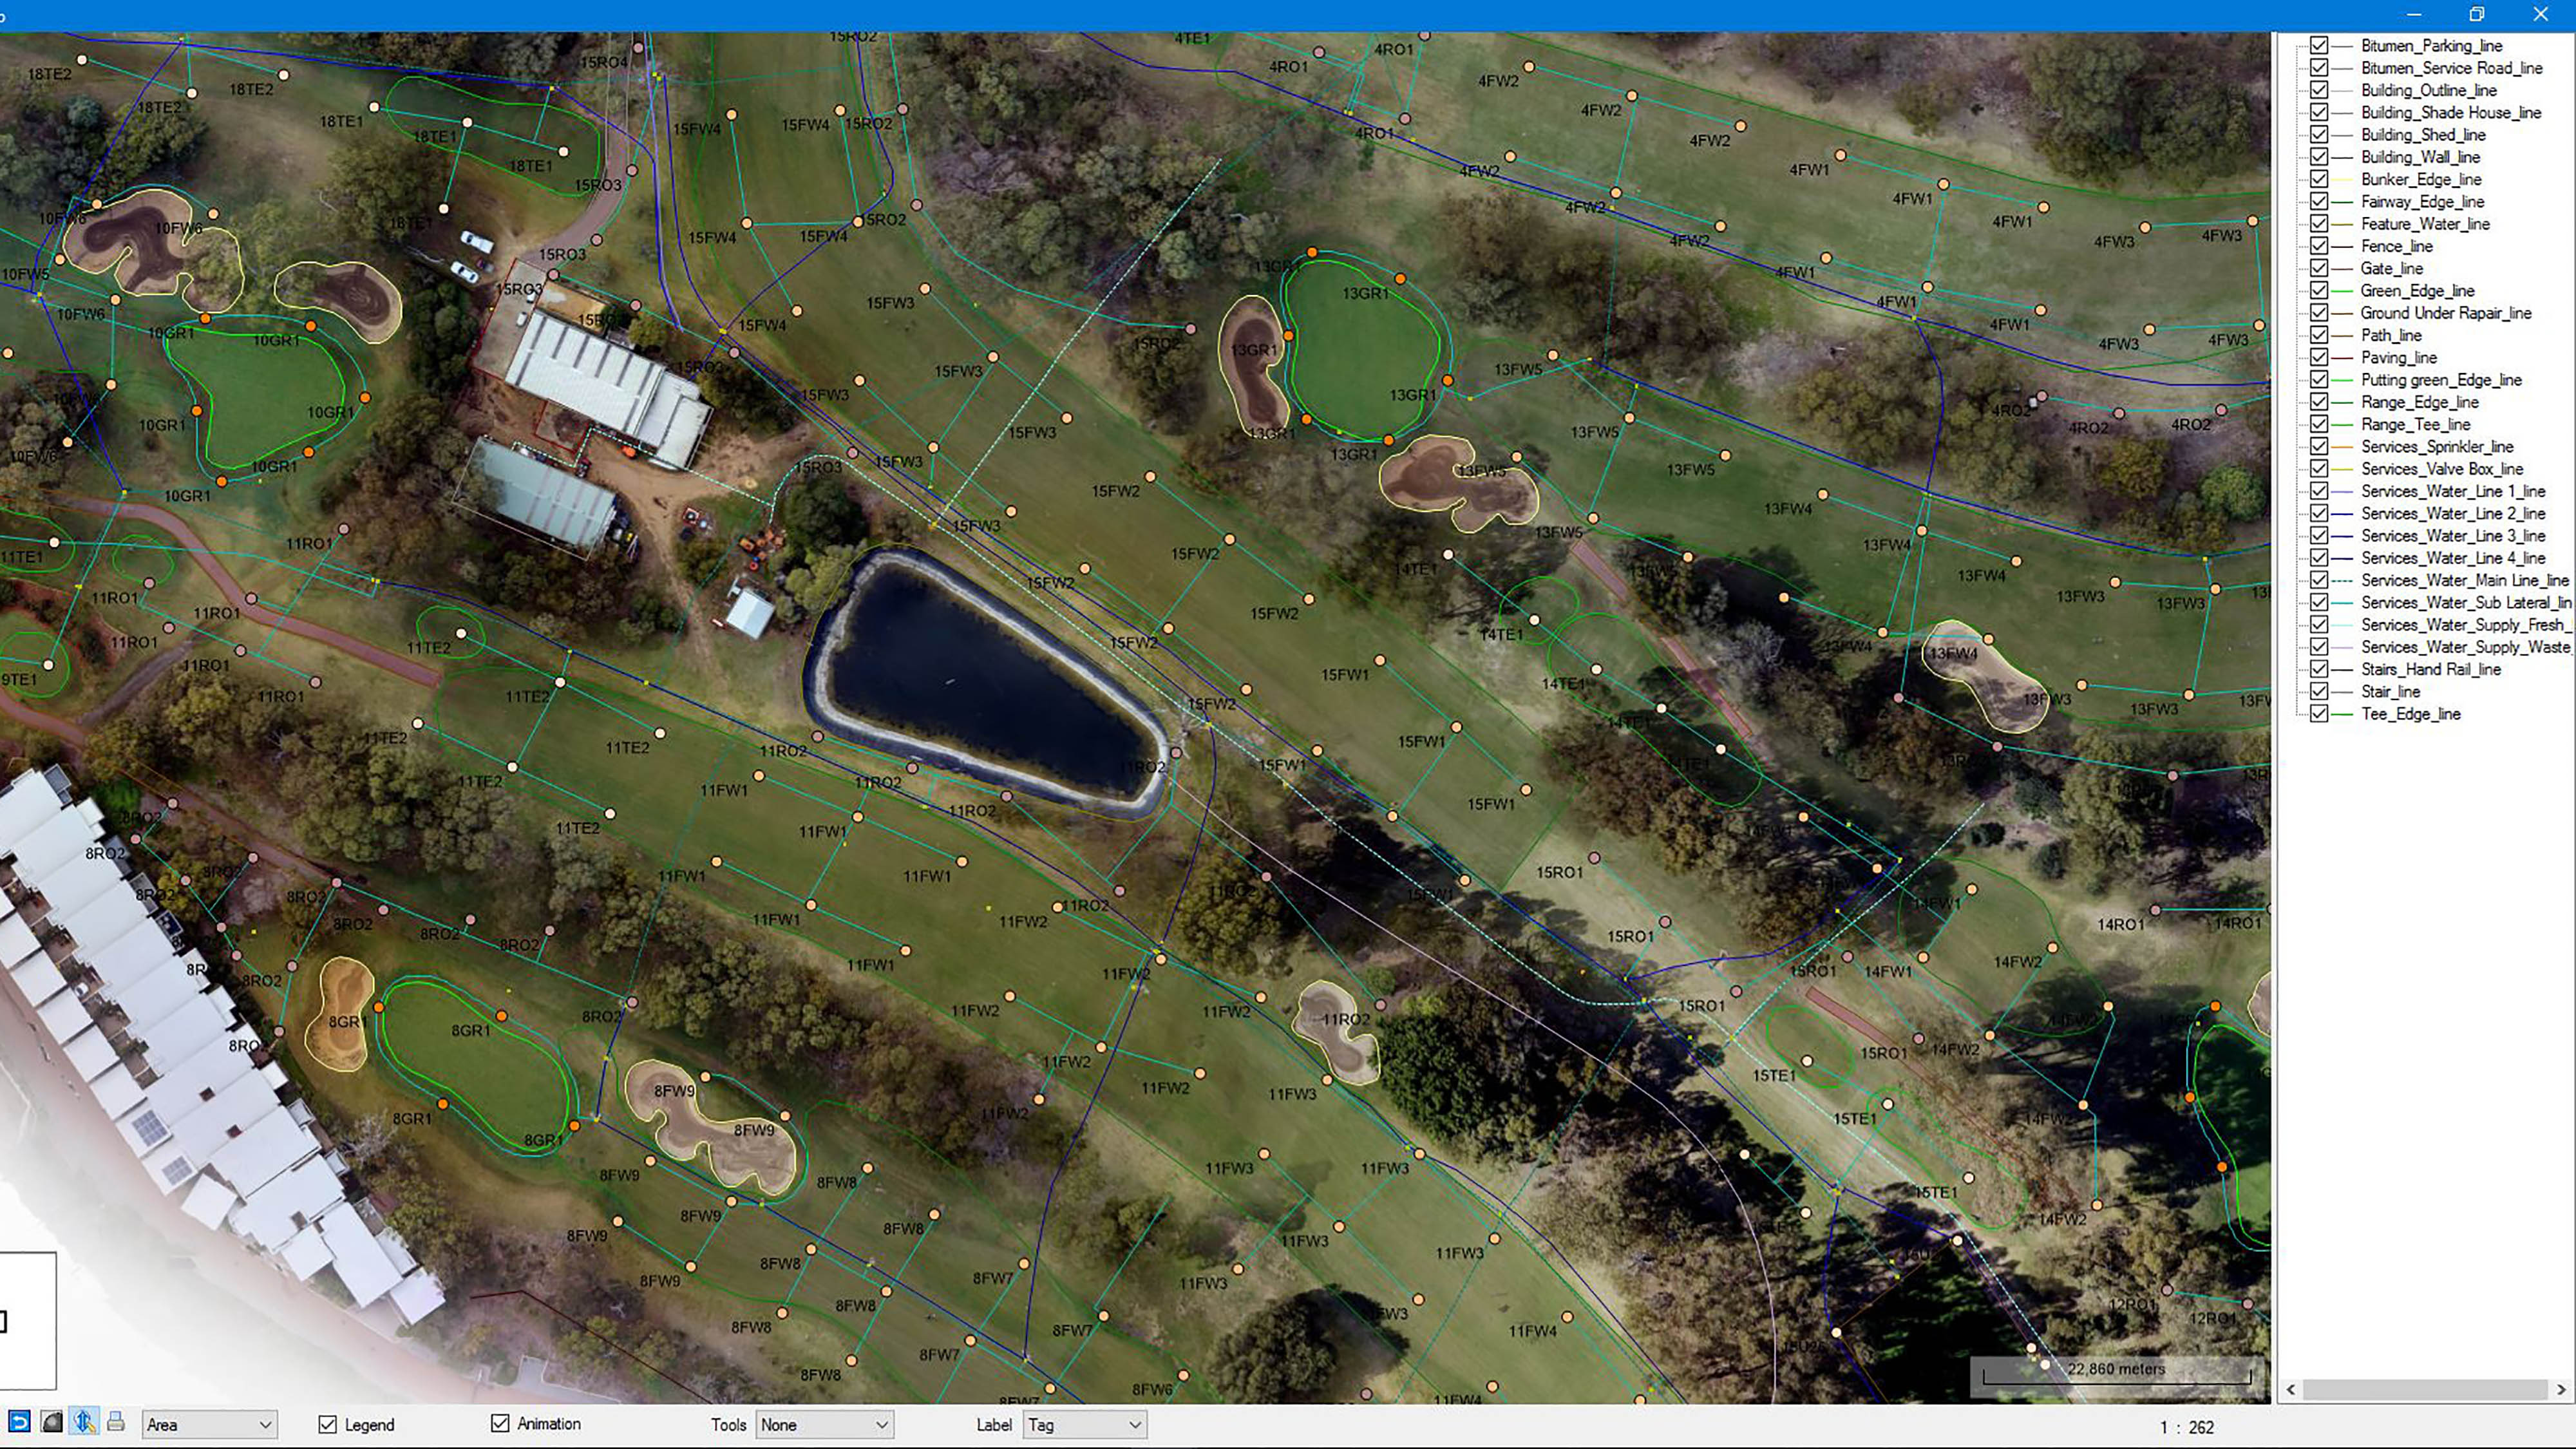 Perth Drone Centre - Aerial Surveying & Mapping